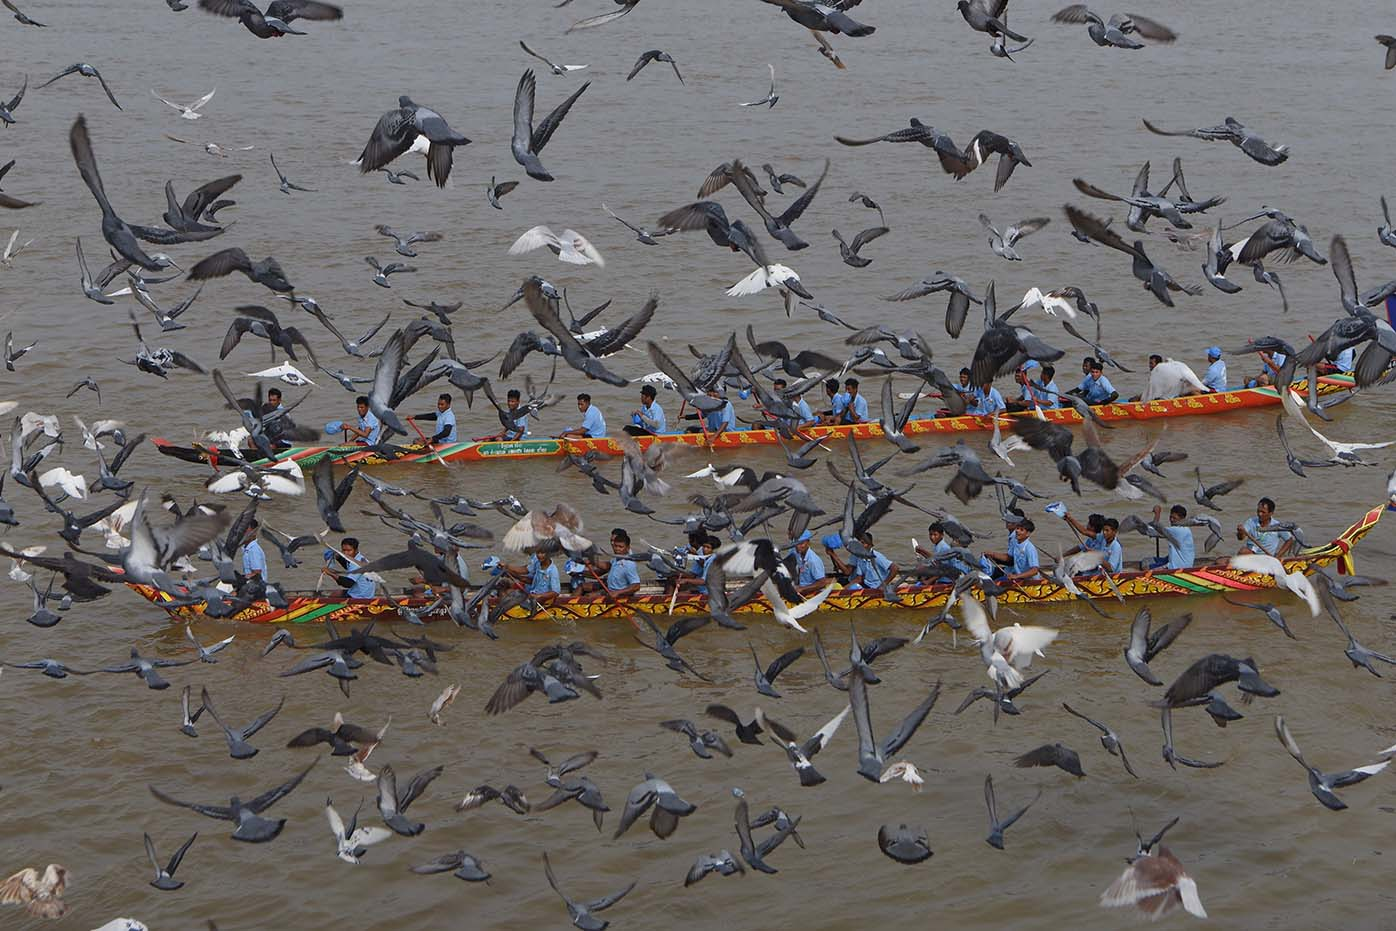 Cambodian participants row their dragon boats as pigeons fly past during the Water Festival on the Tonle Sap river in Phnom Penh on Nov. 10. TANG CHHIN SOTHY/AFP via Getty Images